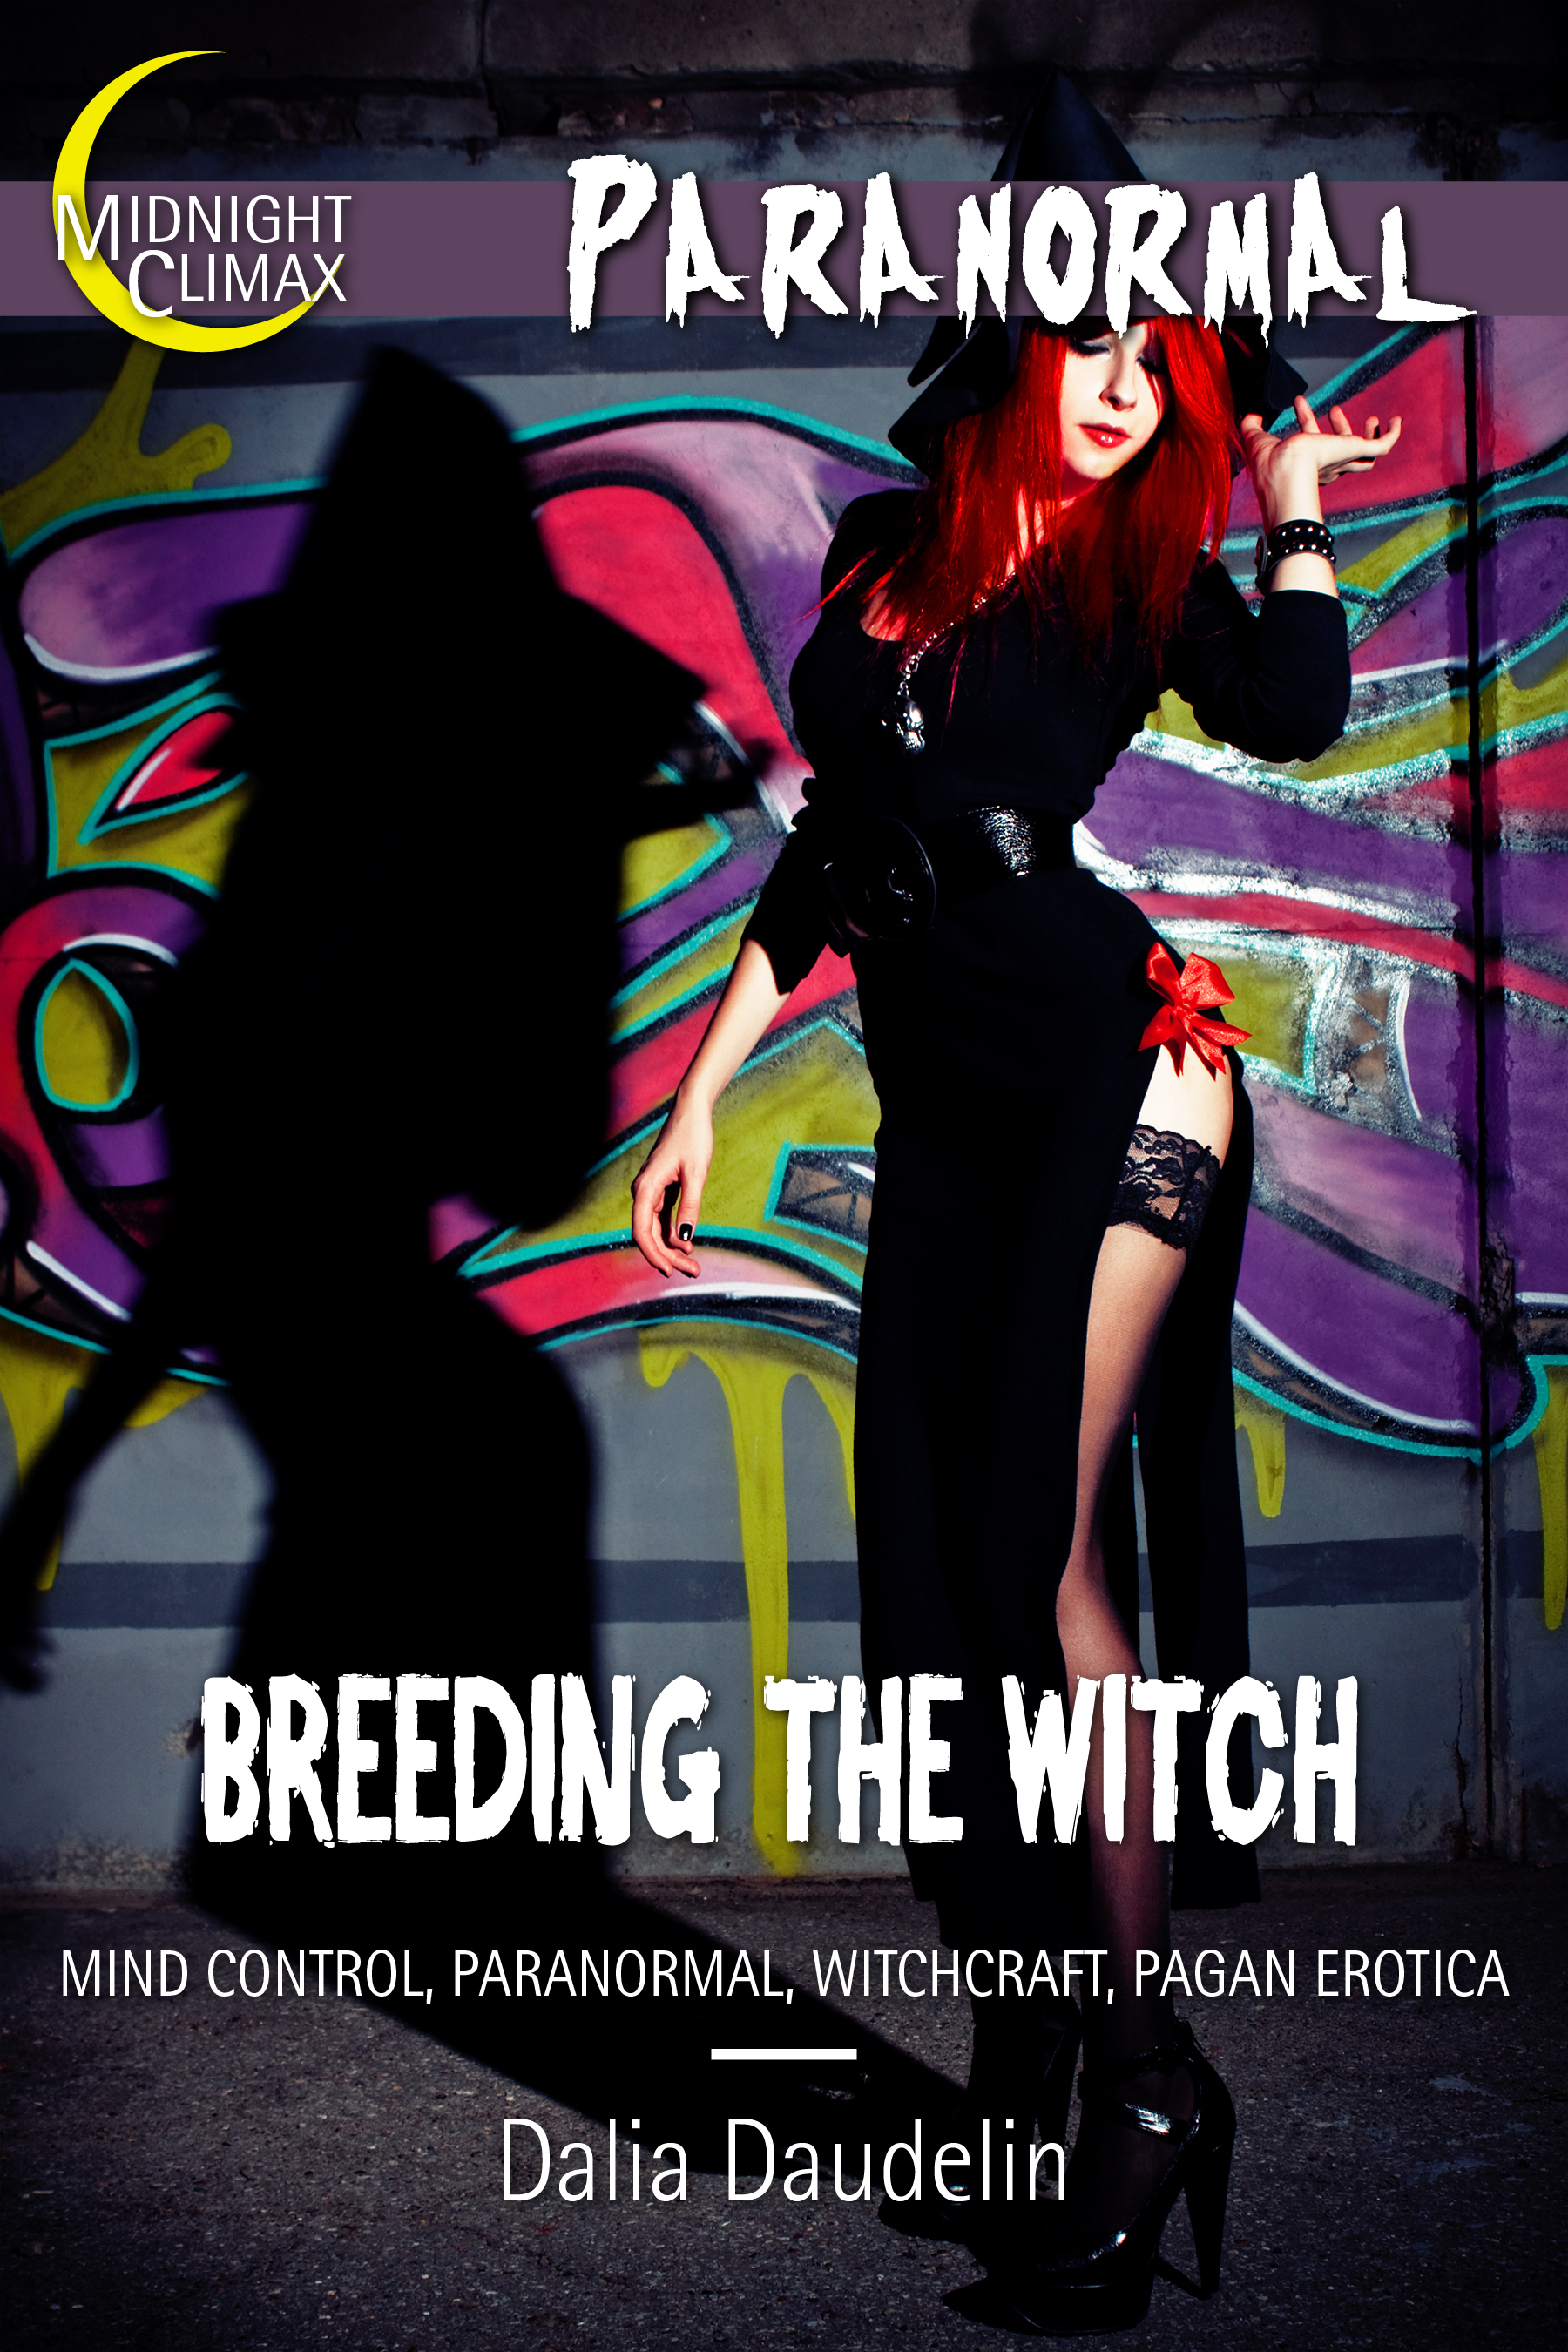 Breeding The Witch (Mind Control, Paranormal, Witchcraft, Pagan Erotica)  by  Dalia Daudelin